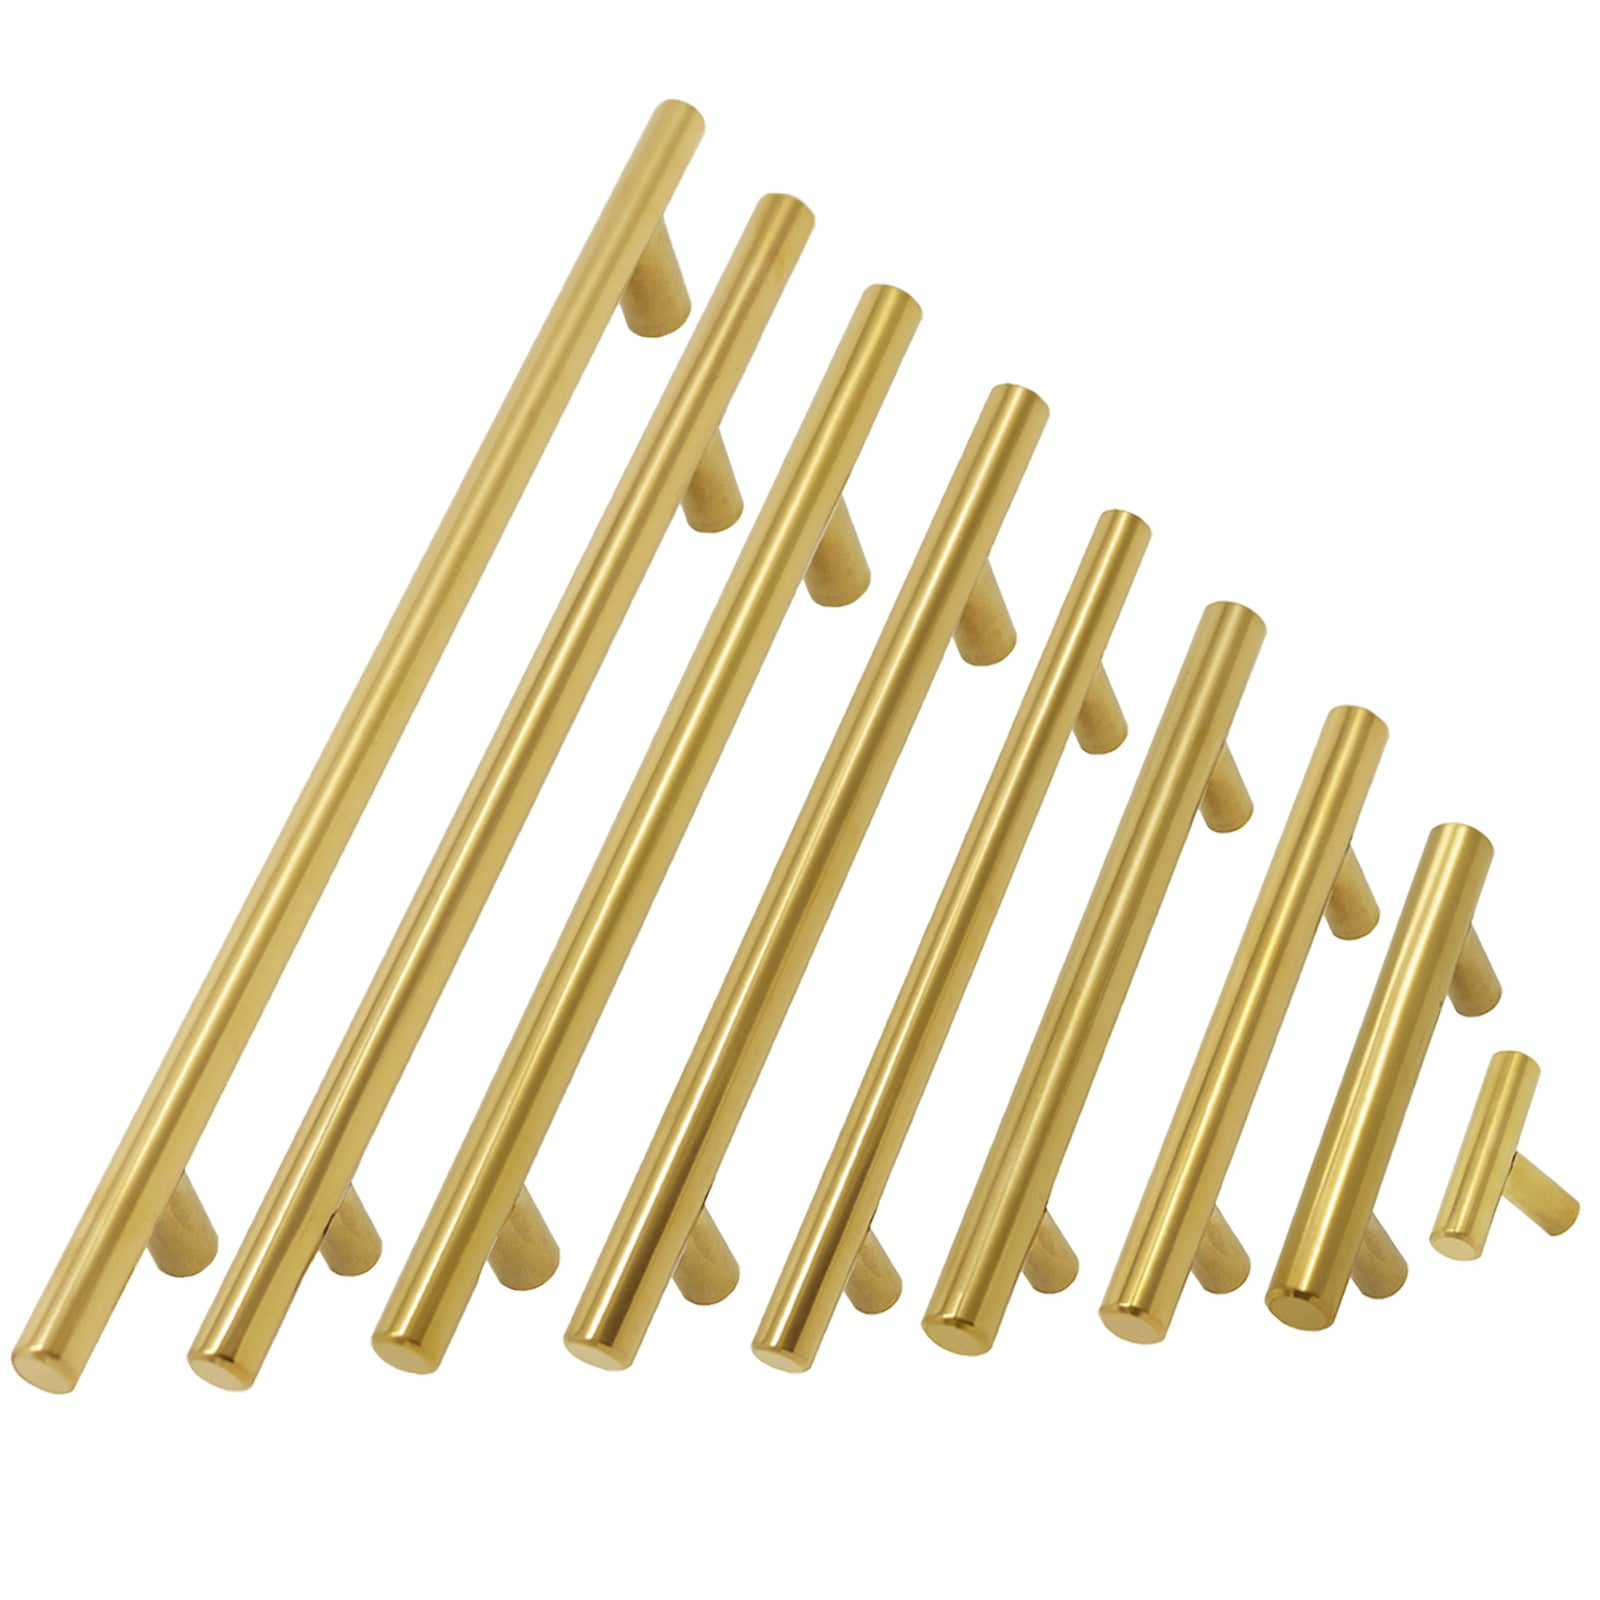 25Pack Polished Brass Kitchen Cabinet Pulls Stainless Steel Drawer T Bar Knobs